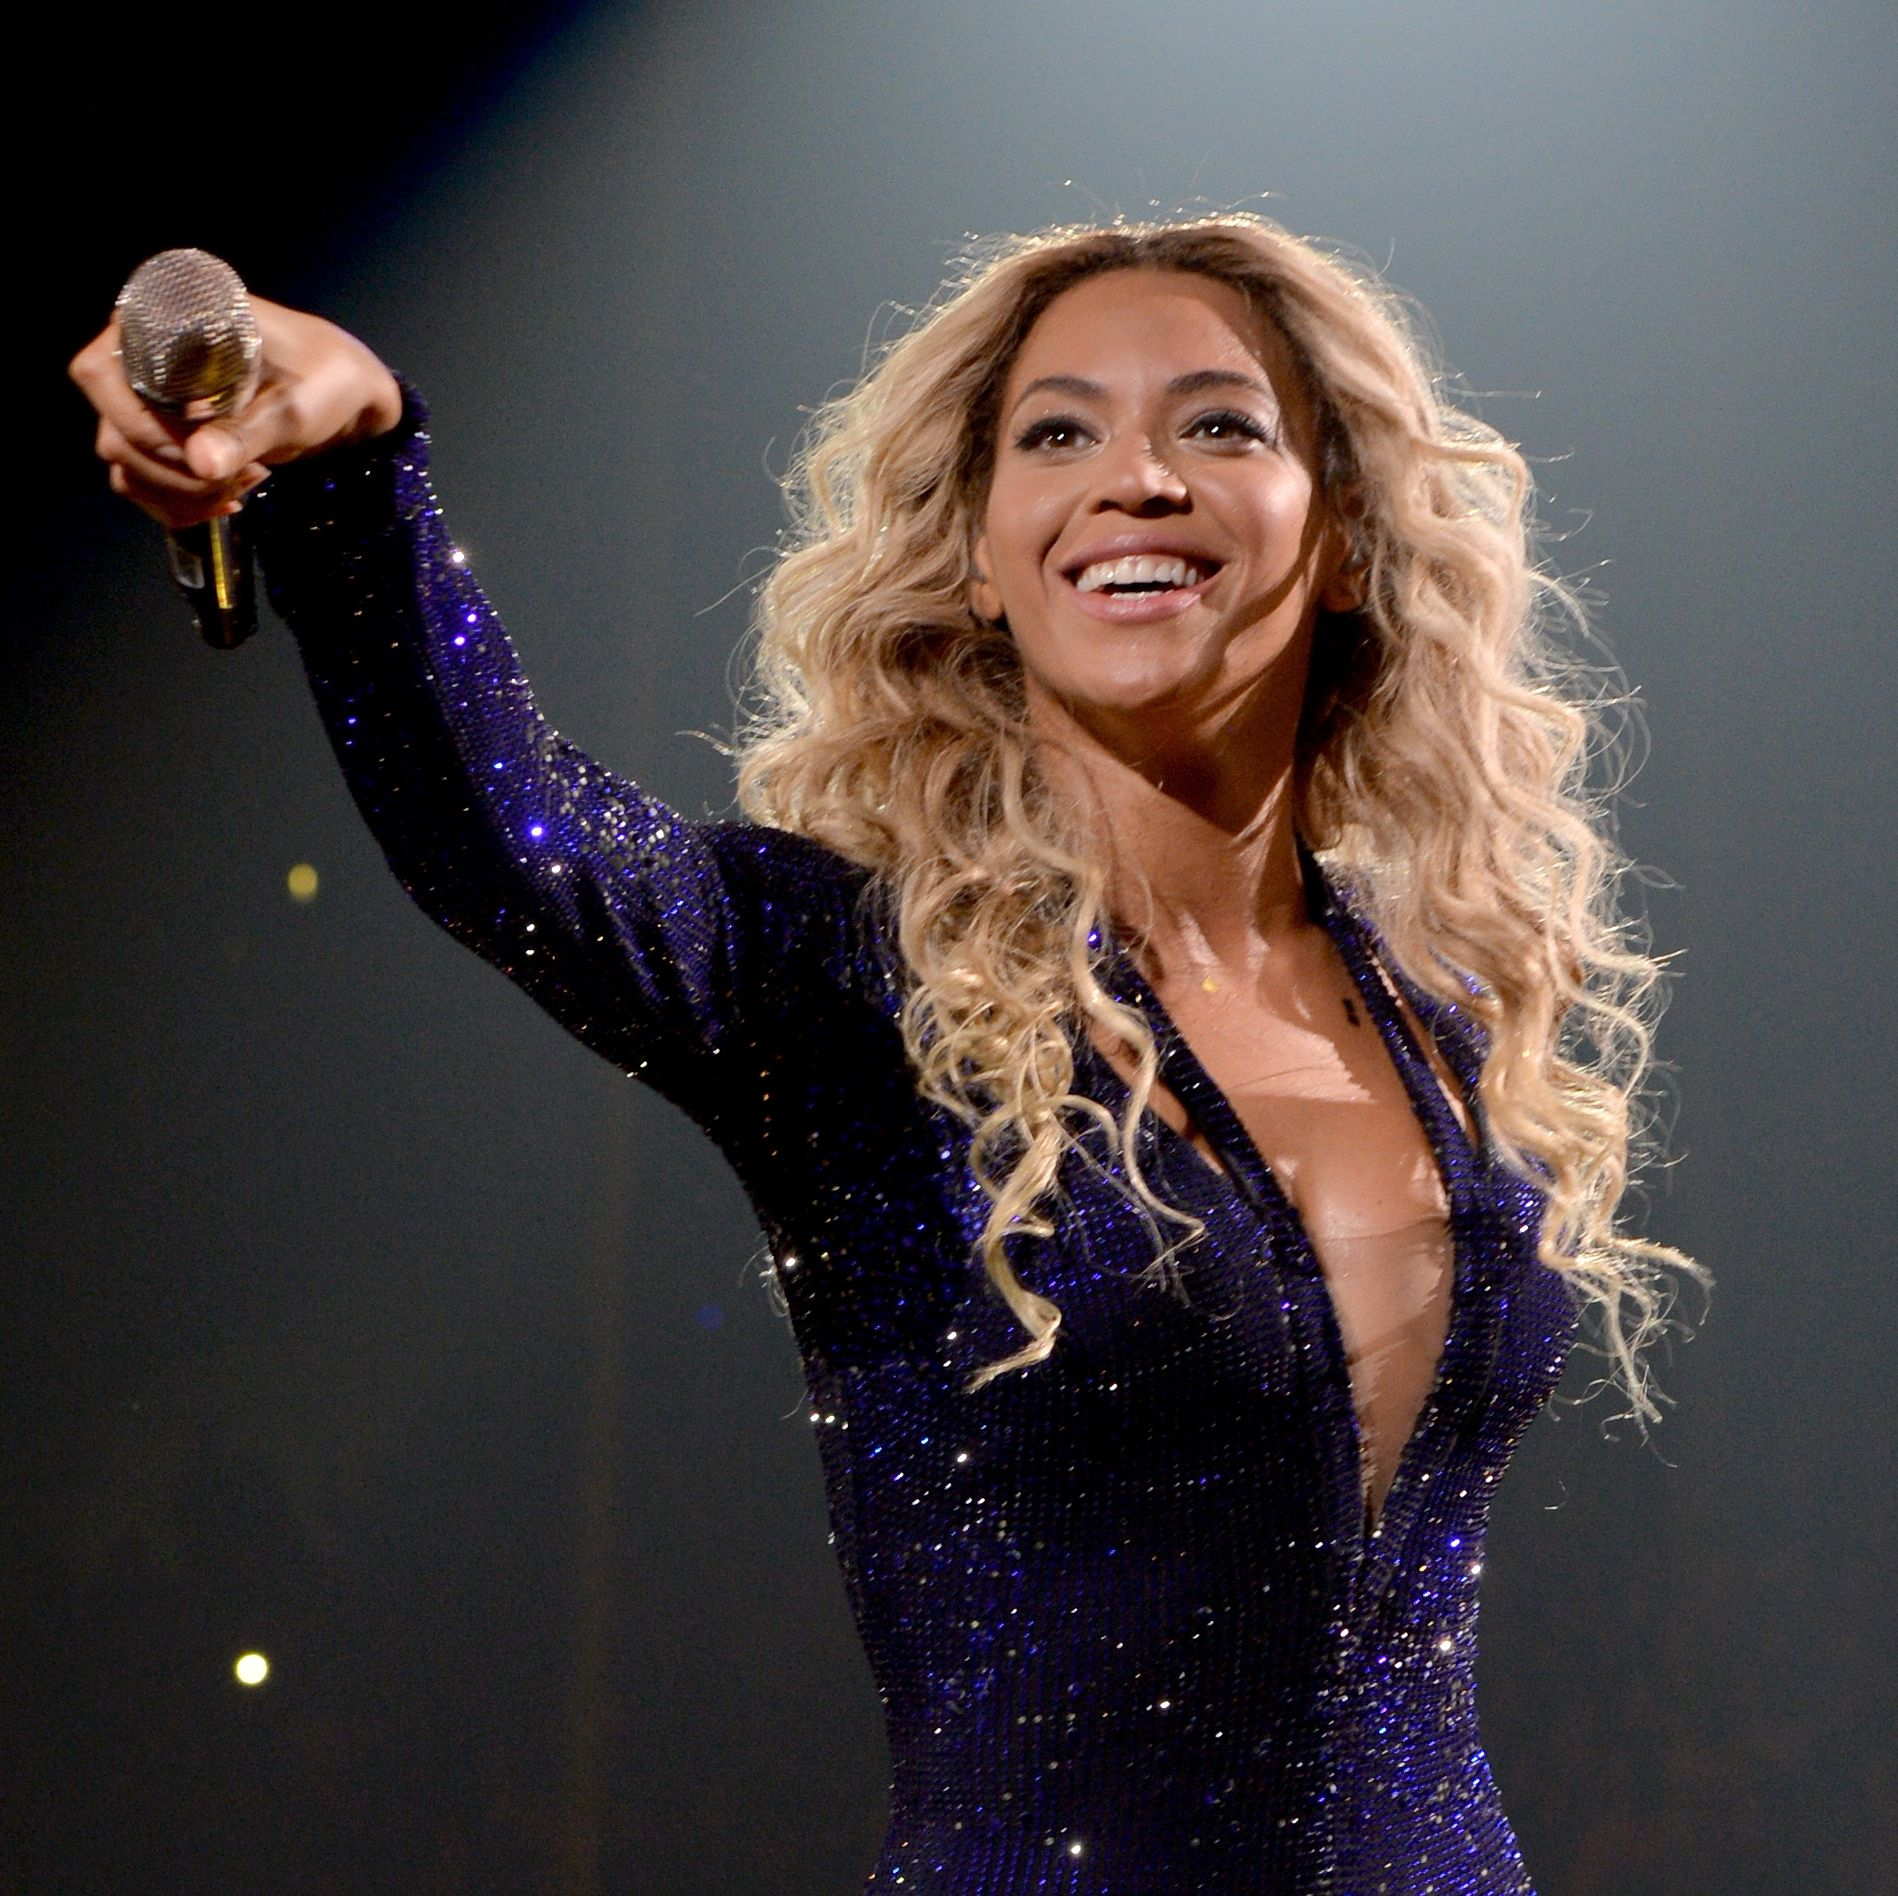 """""""I didn't eat. I stayed in my room."""" """"I didn't eat. I stayed in my room. I was in a really bad place in life, going through that lonely period: 'Who am I? Who are my friends?' My life changed,"""" said Beyonce to CBS News in December 2006 of the depression she went through after Destiny's Child broke up."""